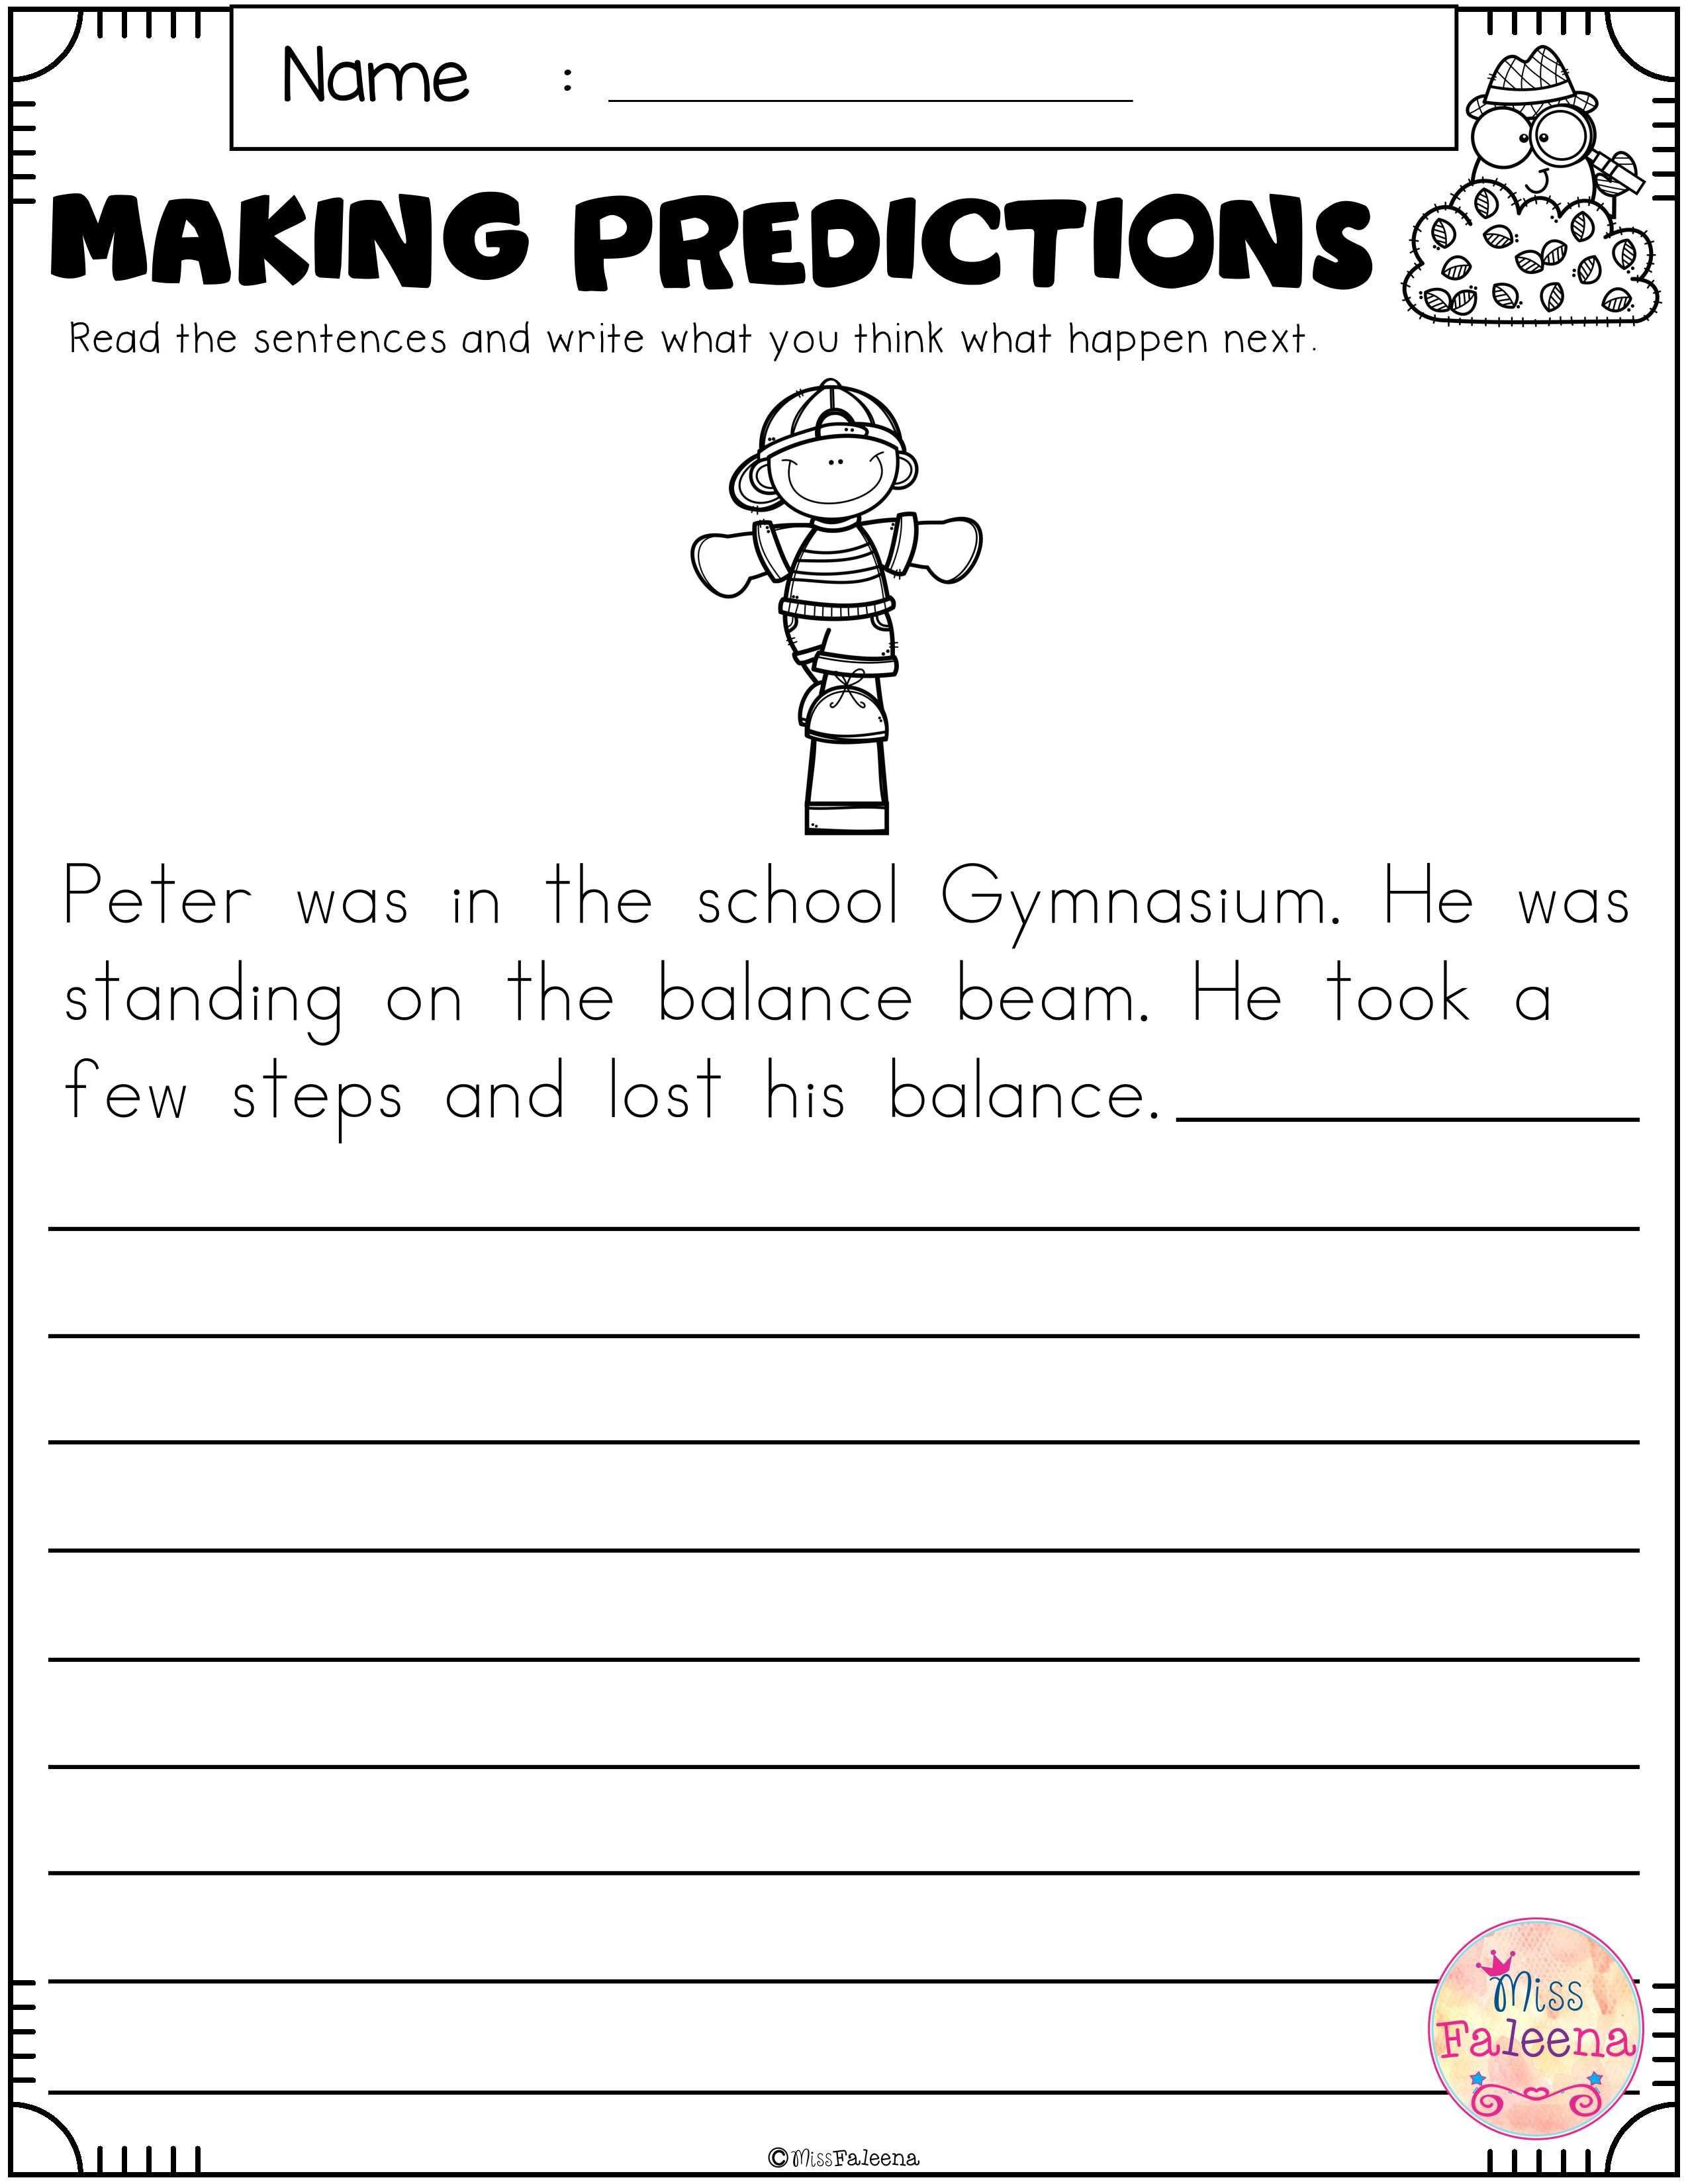 hight resolution of Making Predictions Worksheet 2nd Grade Free Making Predictions   Making  predictions